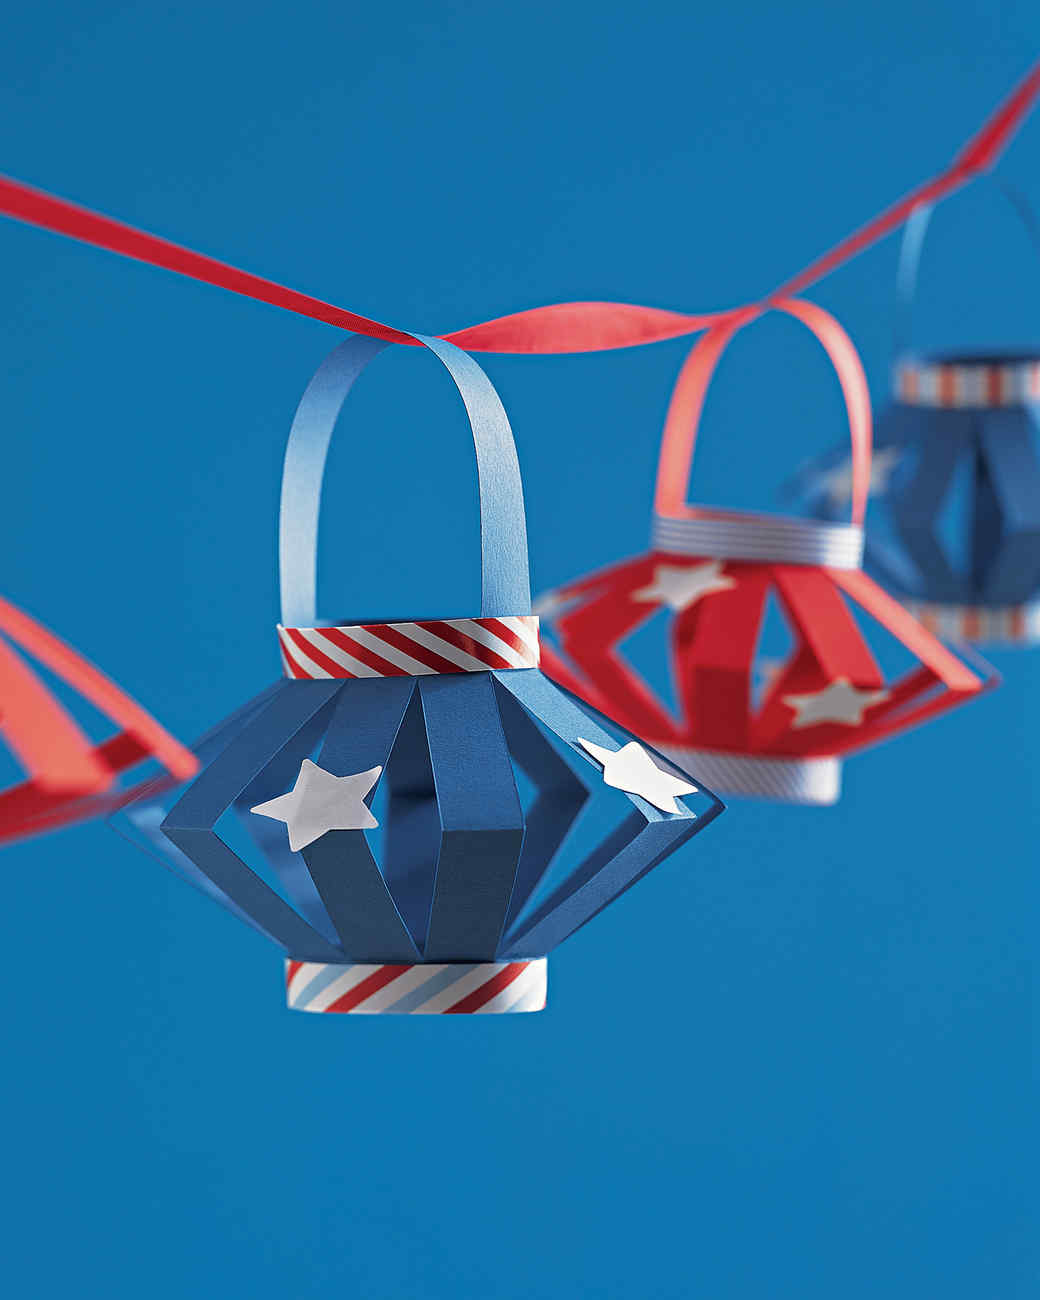 Patriotic Red White And Blue Crafts And Party